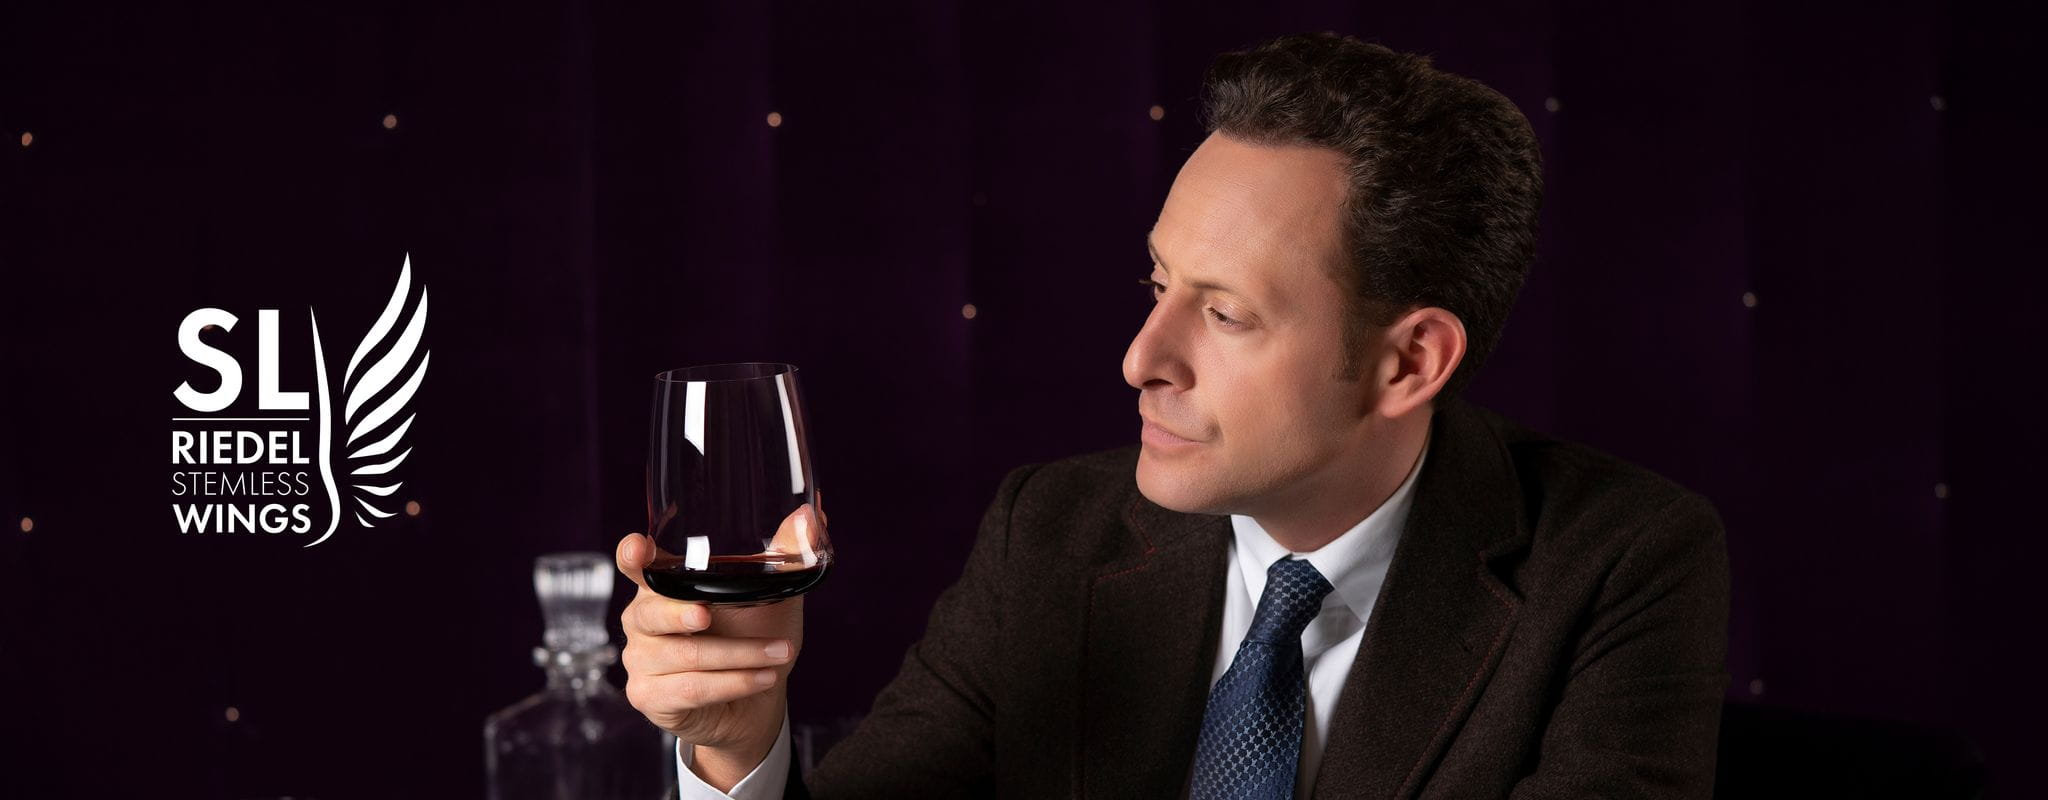 Maximilan Riedel holds a SL RIEDEL Stemless Wings Cabernet